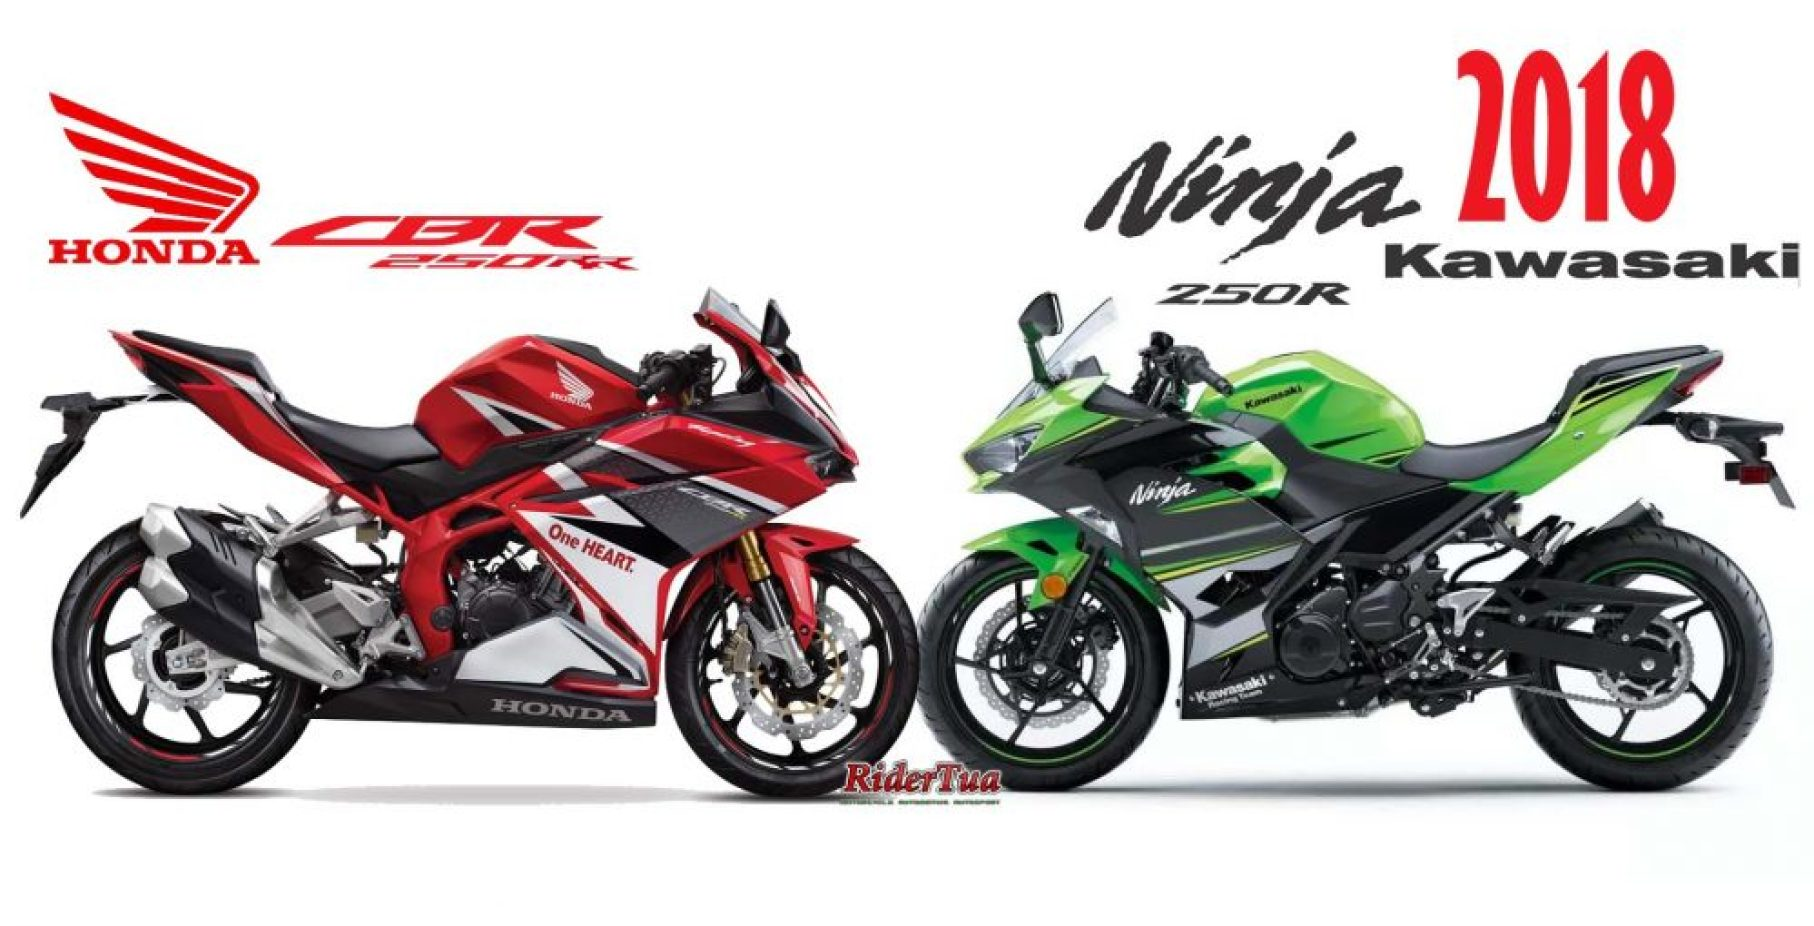 Komparasi All New Ninja 250 2018 Versus Honda CBR250RR